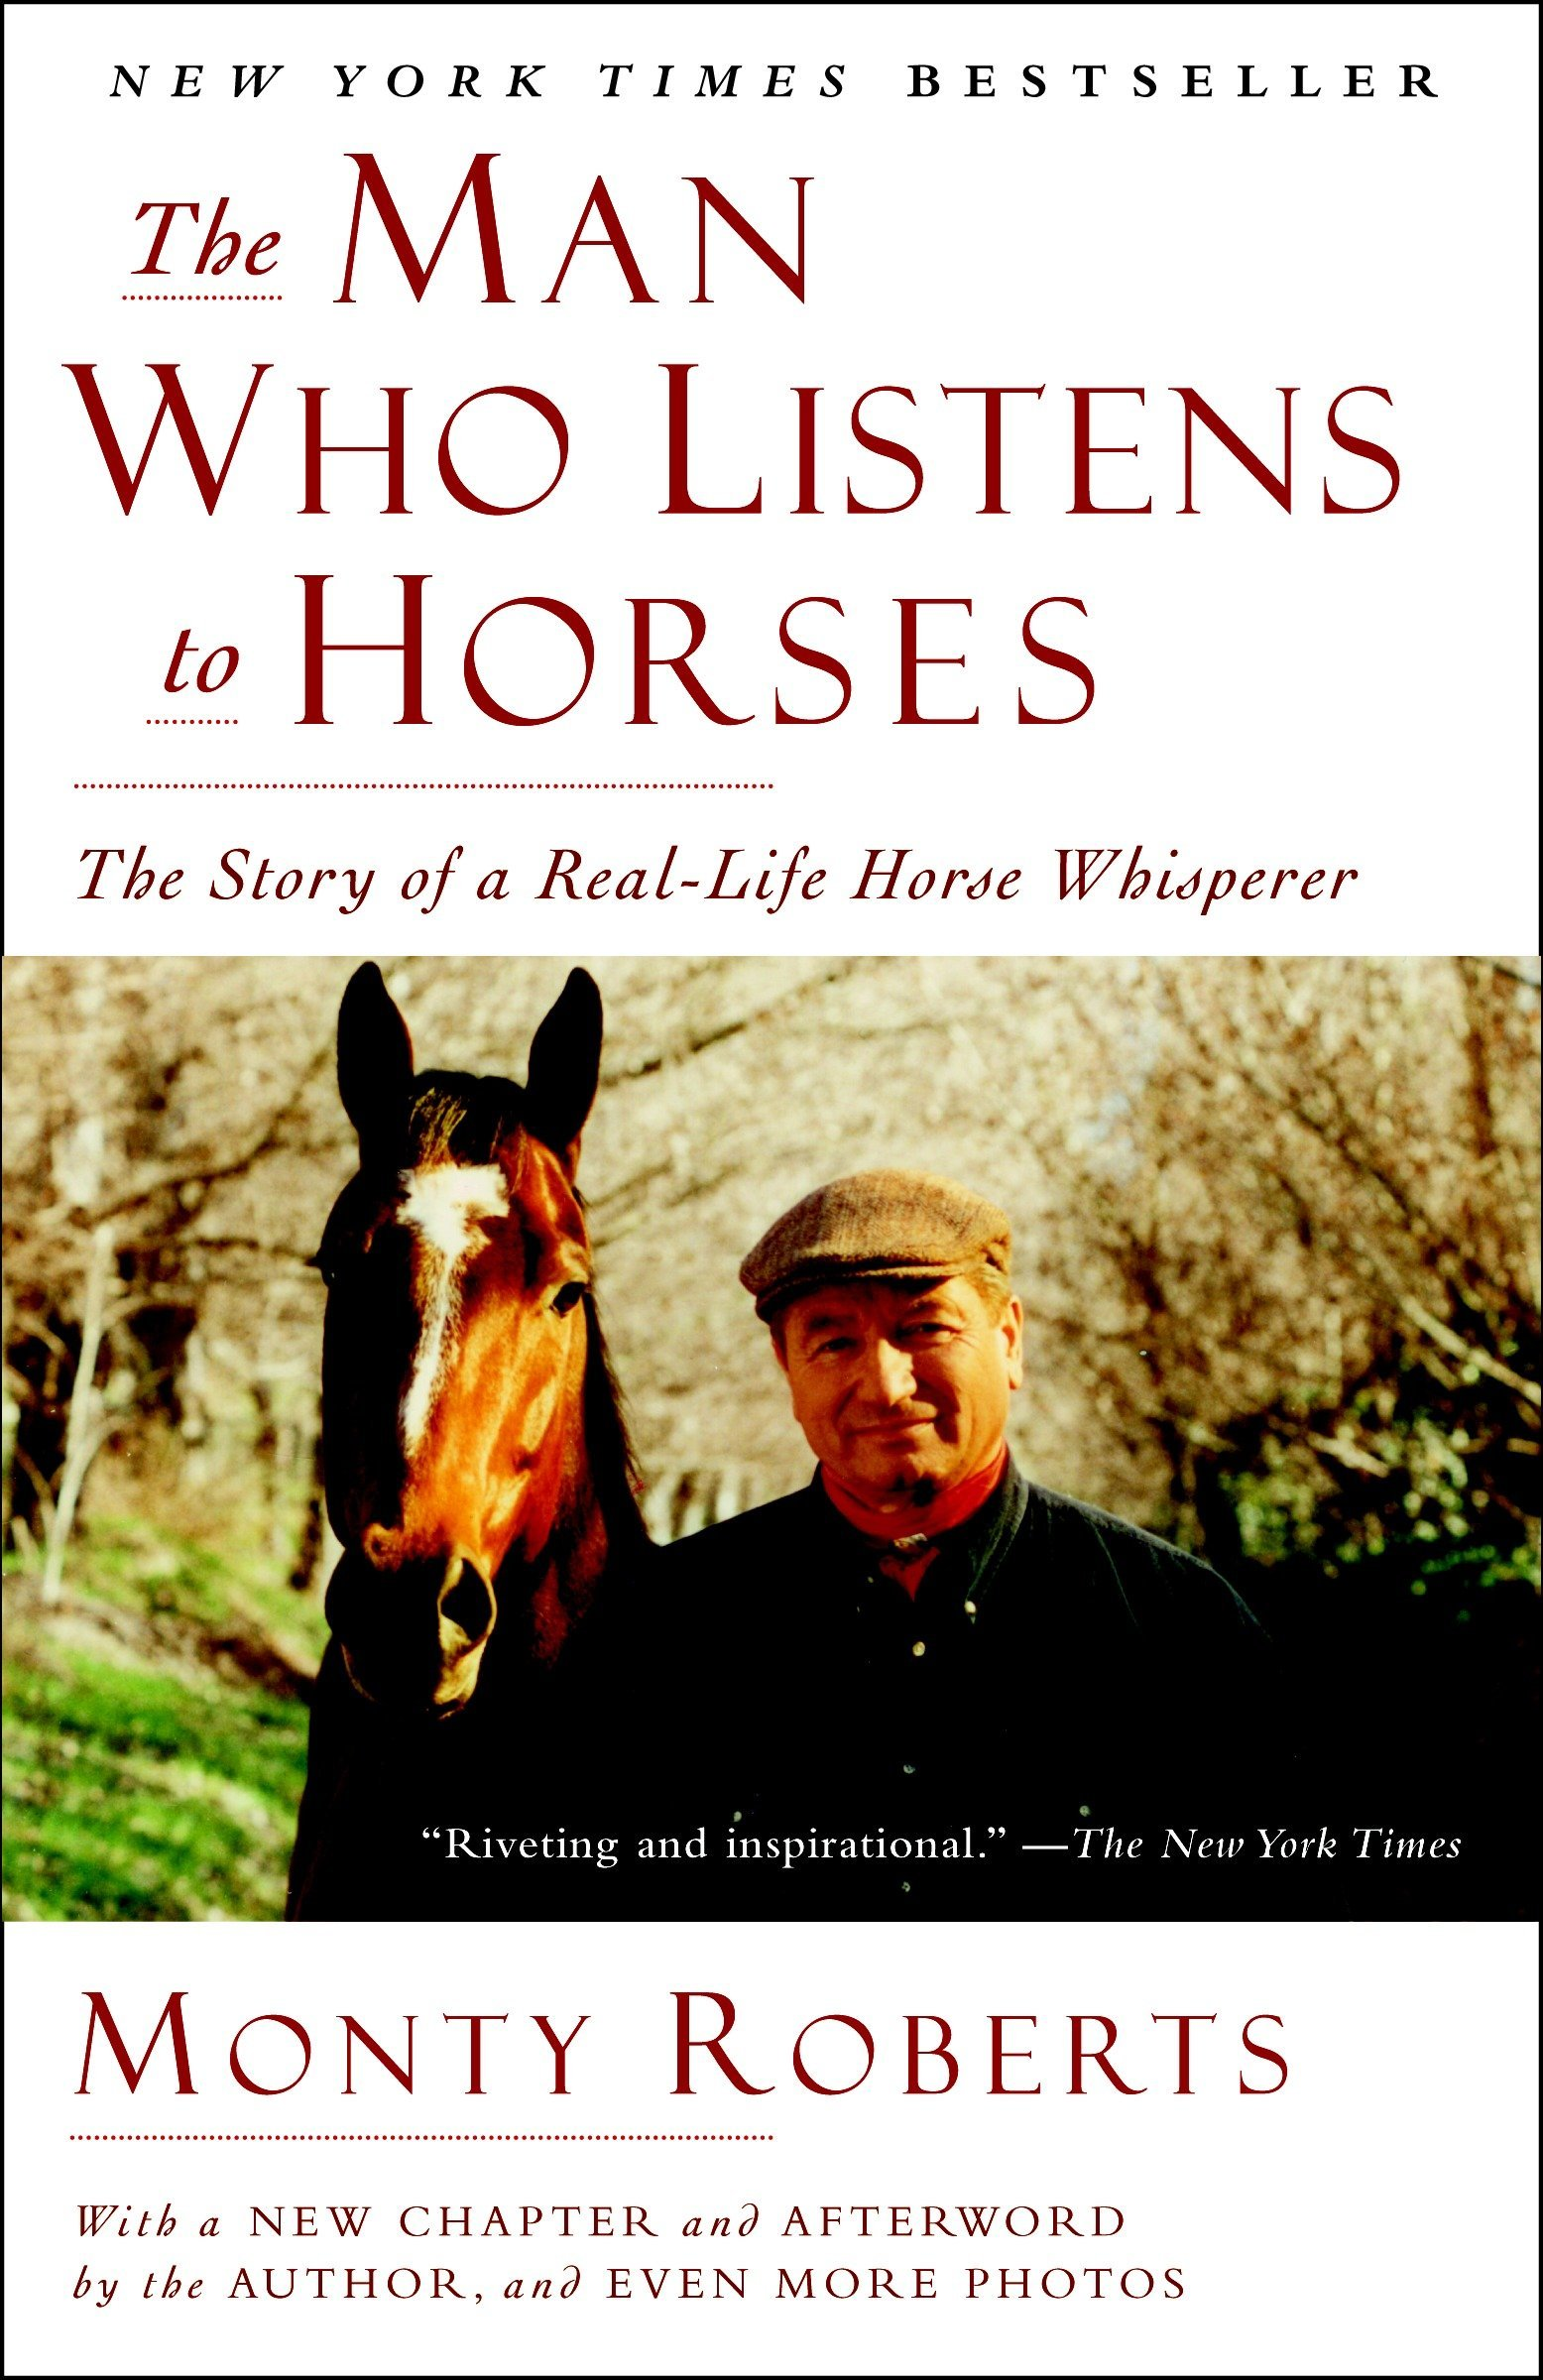 c960bf1b91a The Man Who Listens to Horses  The Story of a Real-Life Horse ...